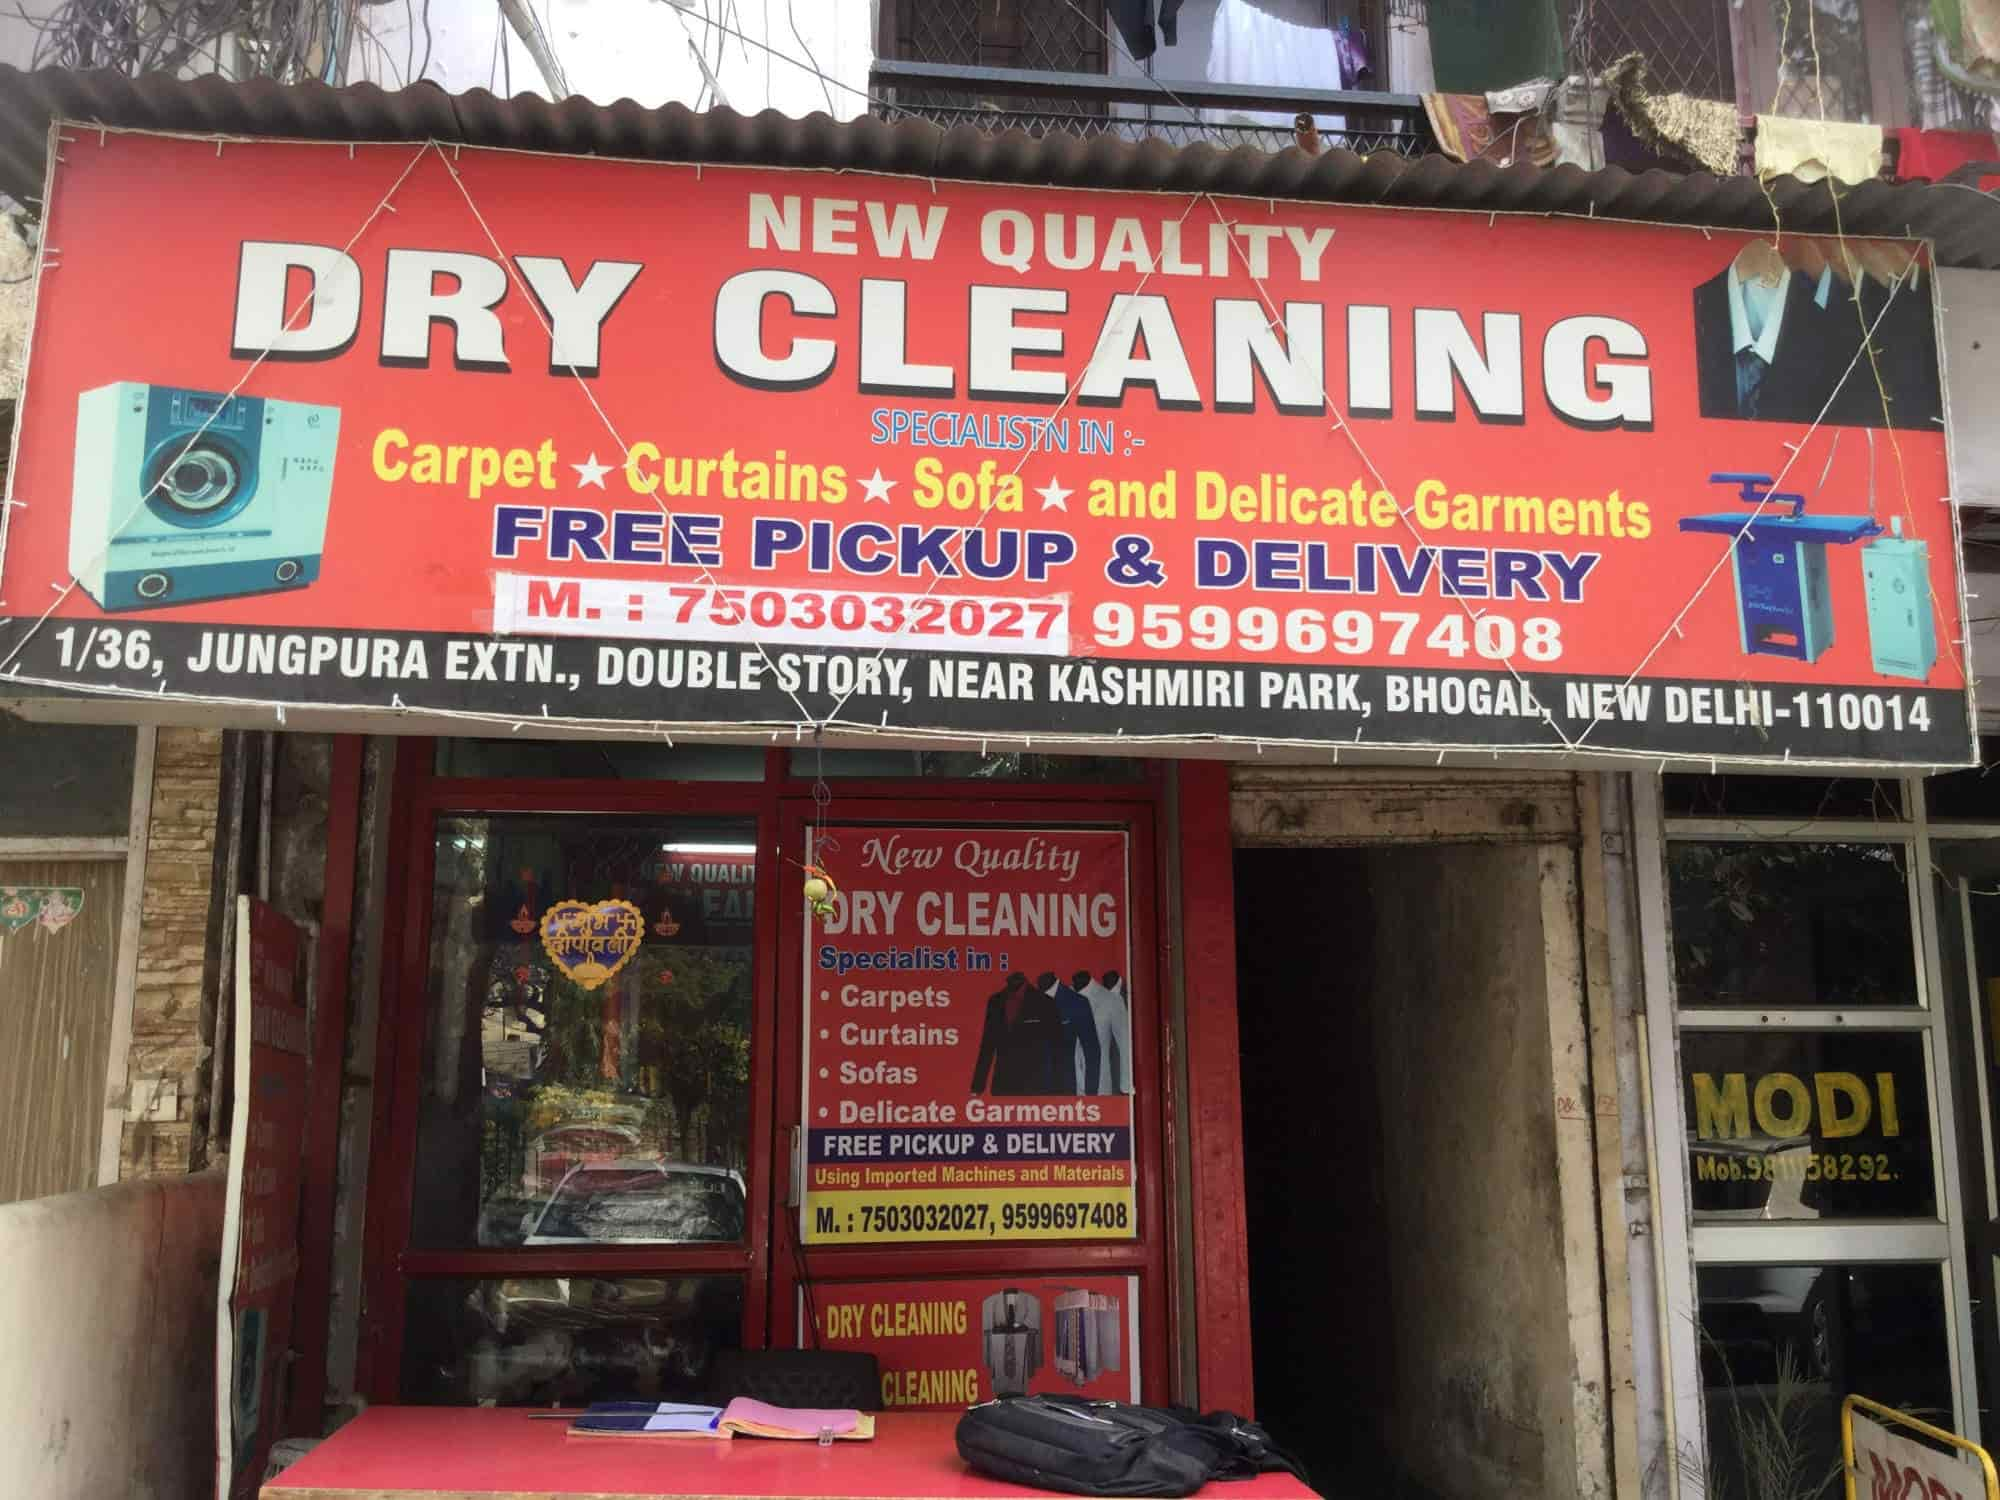 Front View of Dry Cleaner Shop - New Quality Dry Cleaning Photos 0a4f75e05